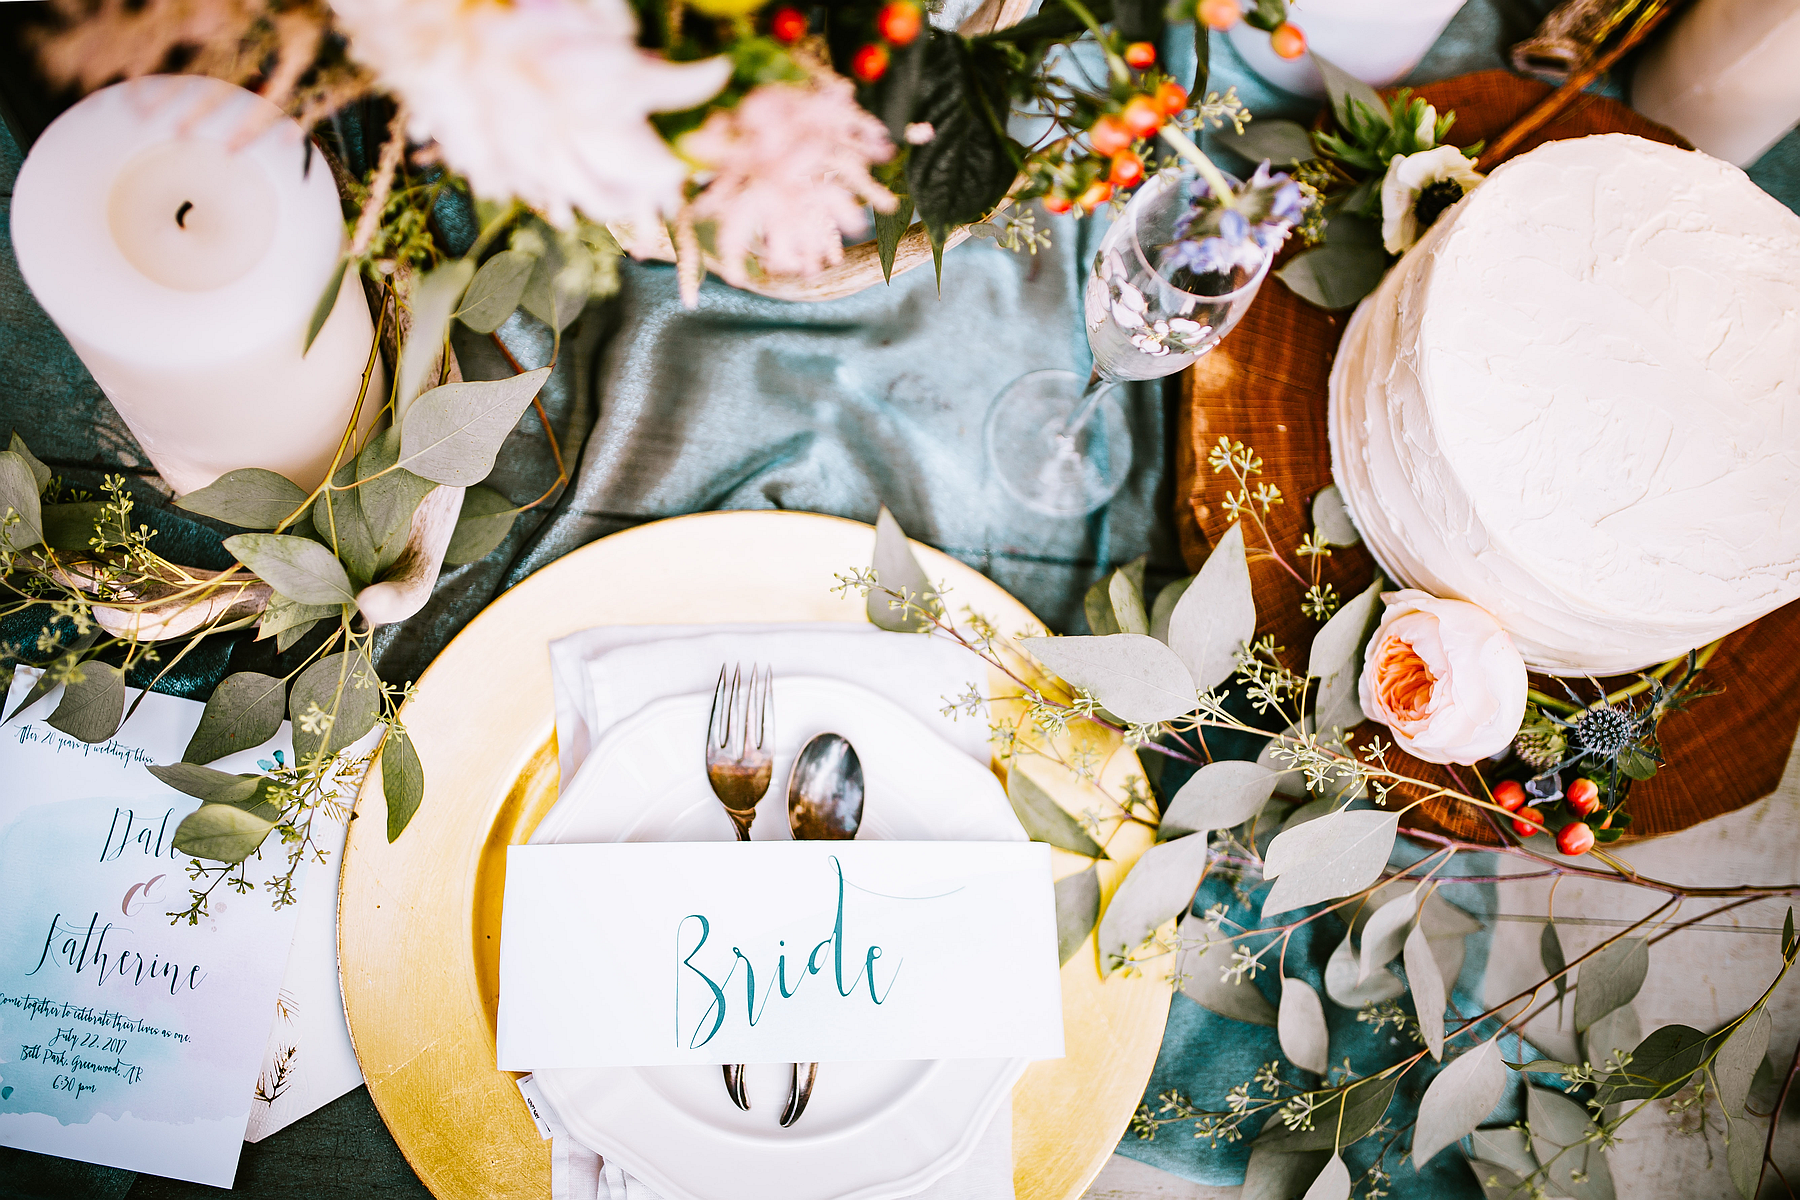 Bride's Place Setting For Minister Ordination (Photo)